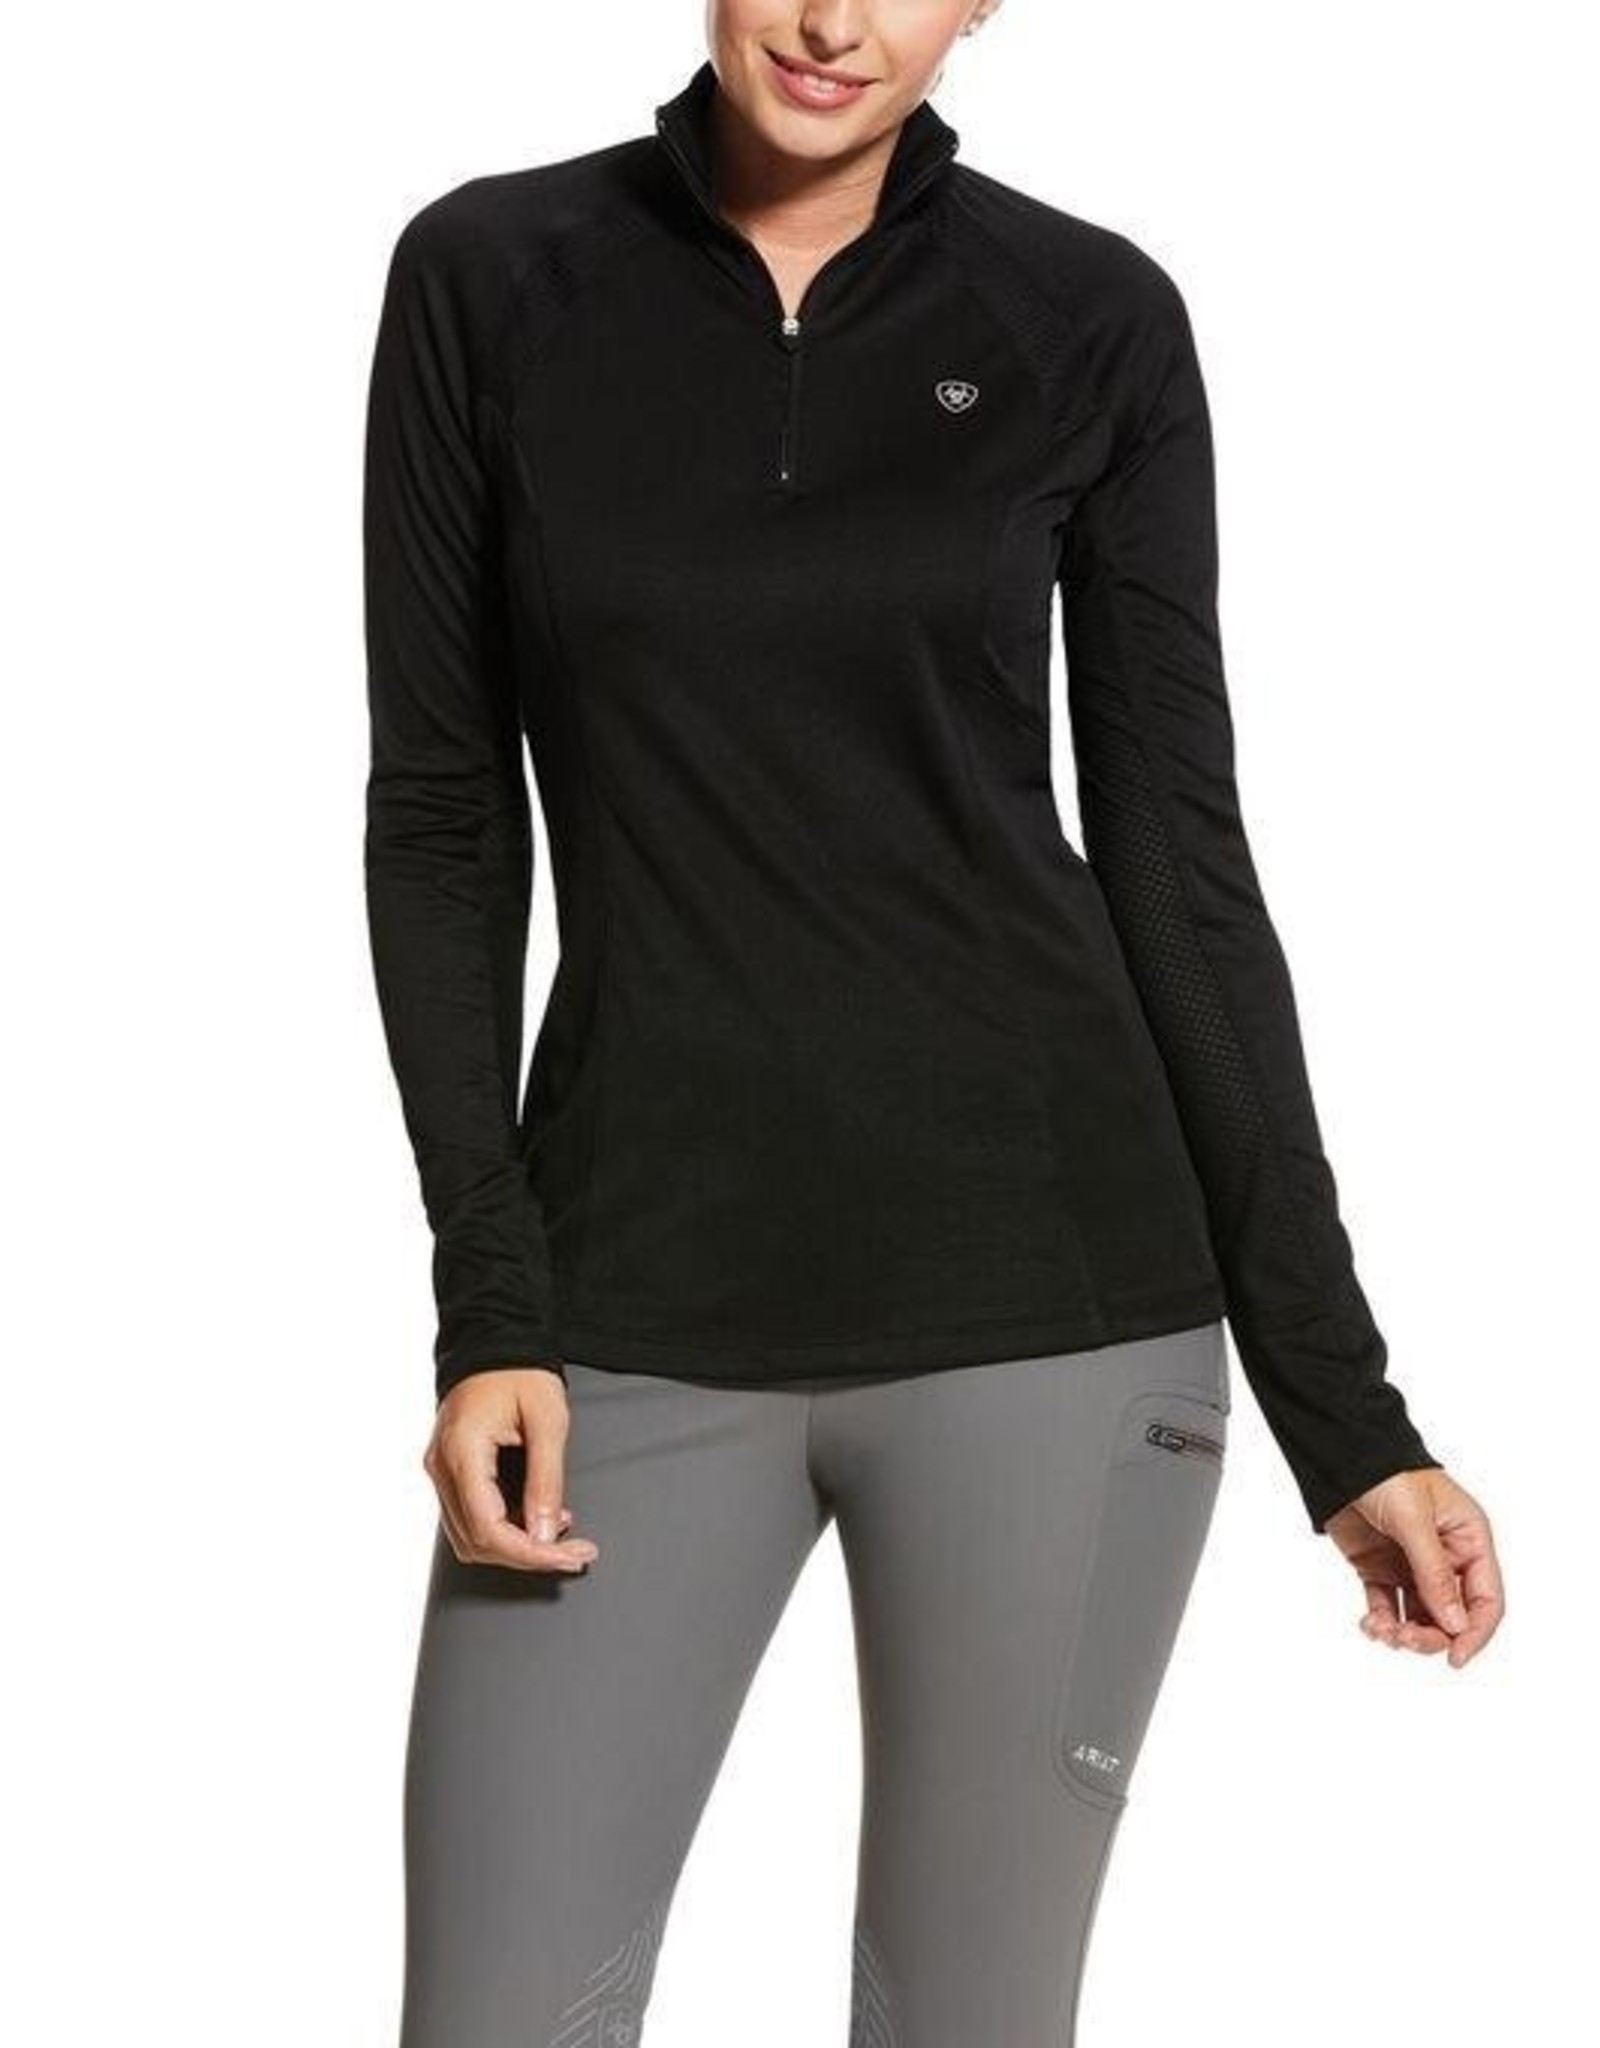 Ariat Ladies' Sunstopper 2.0 1/4 Zip Baselayer Shirt